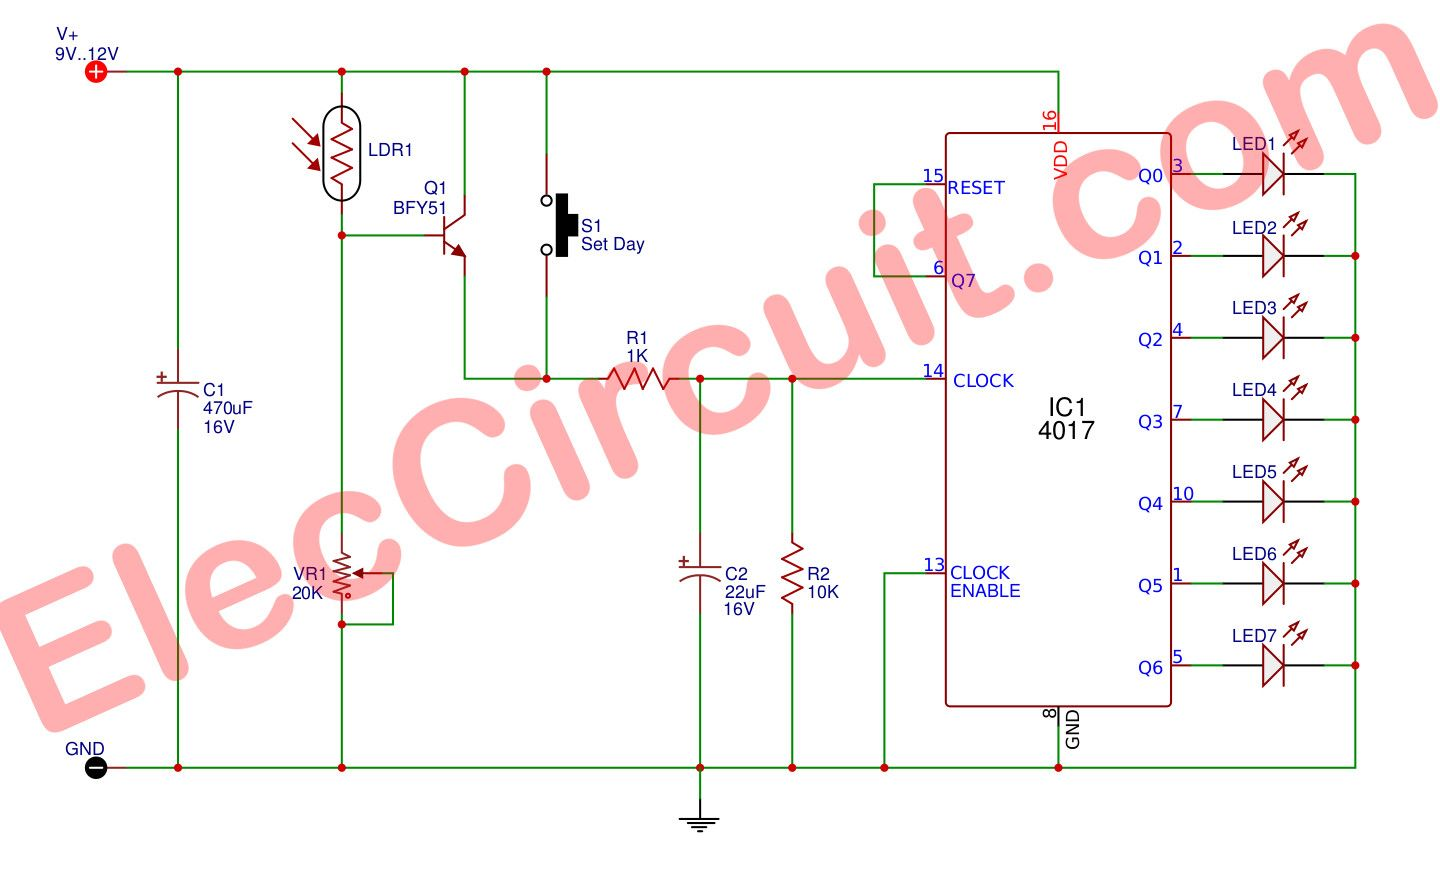 The Automatically Day indicator circuit Ldr, Circuit